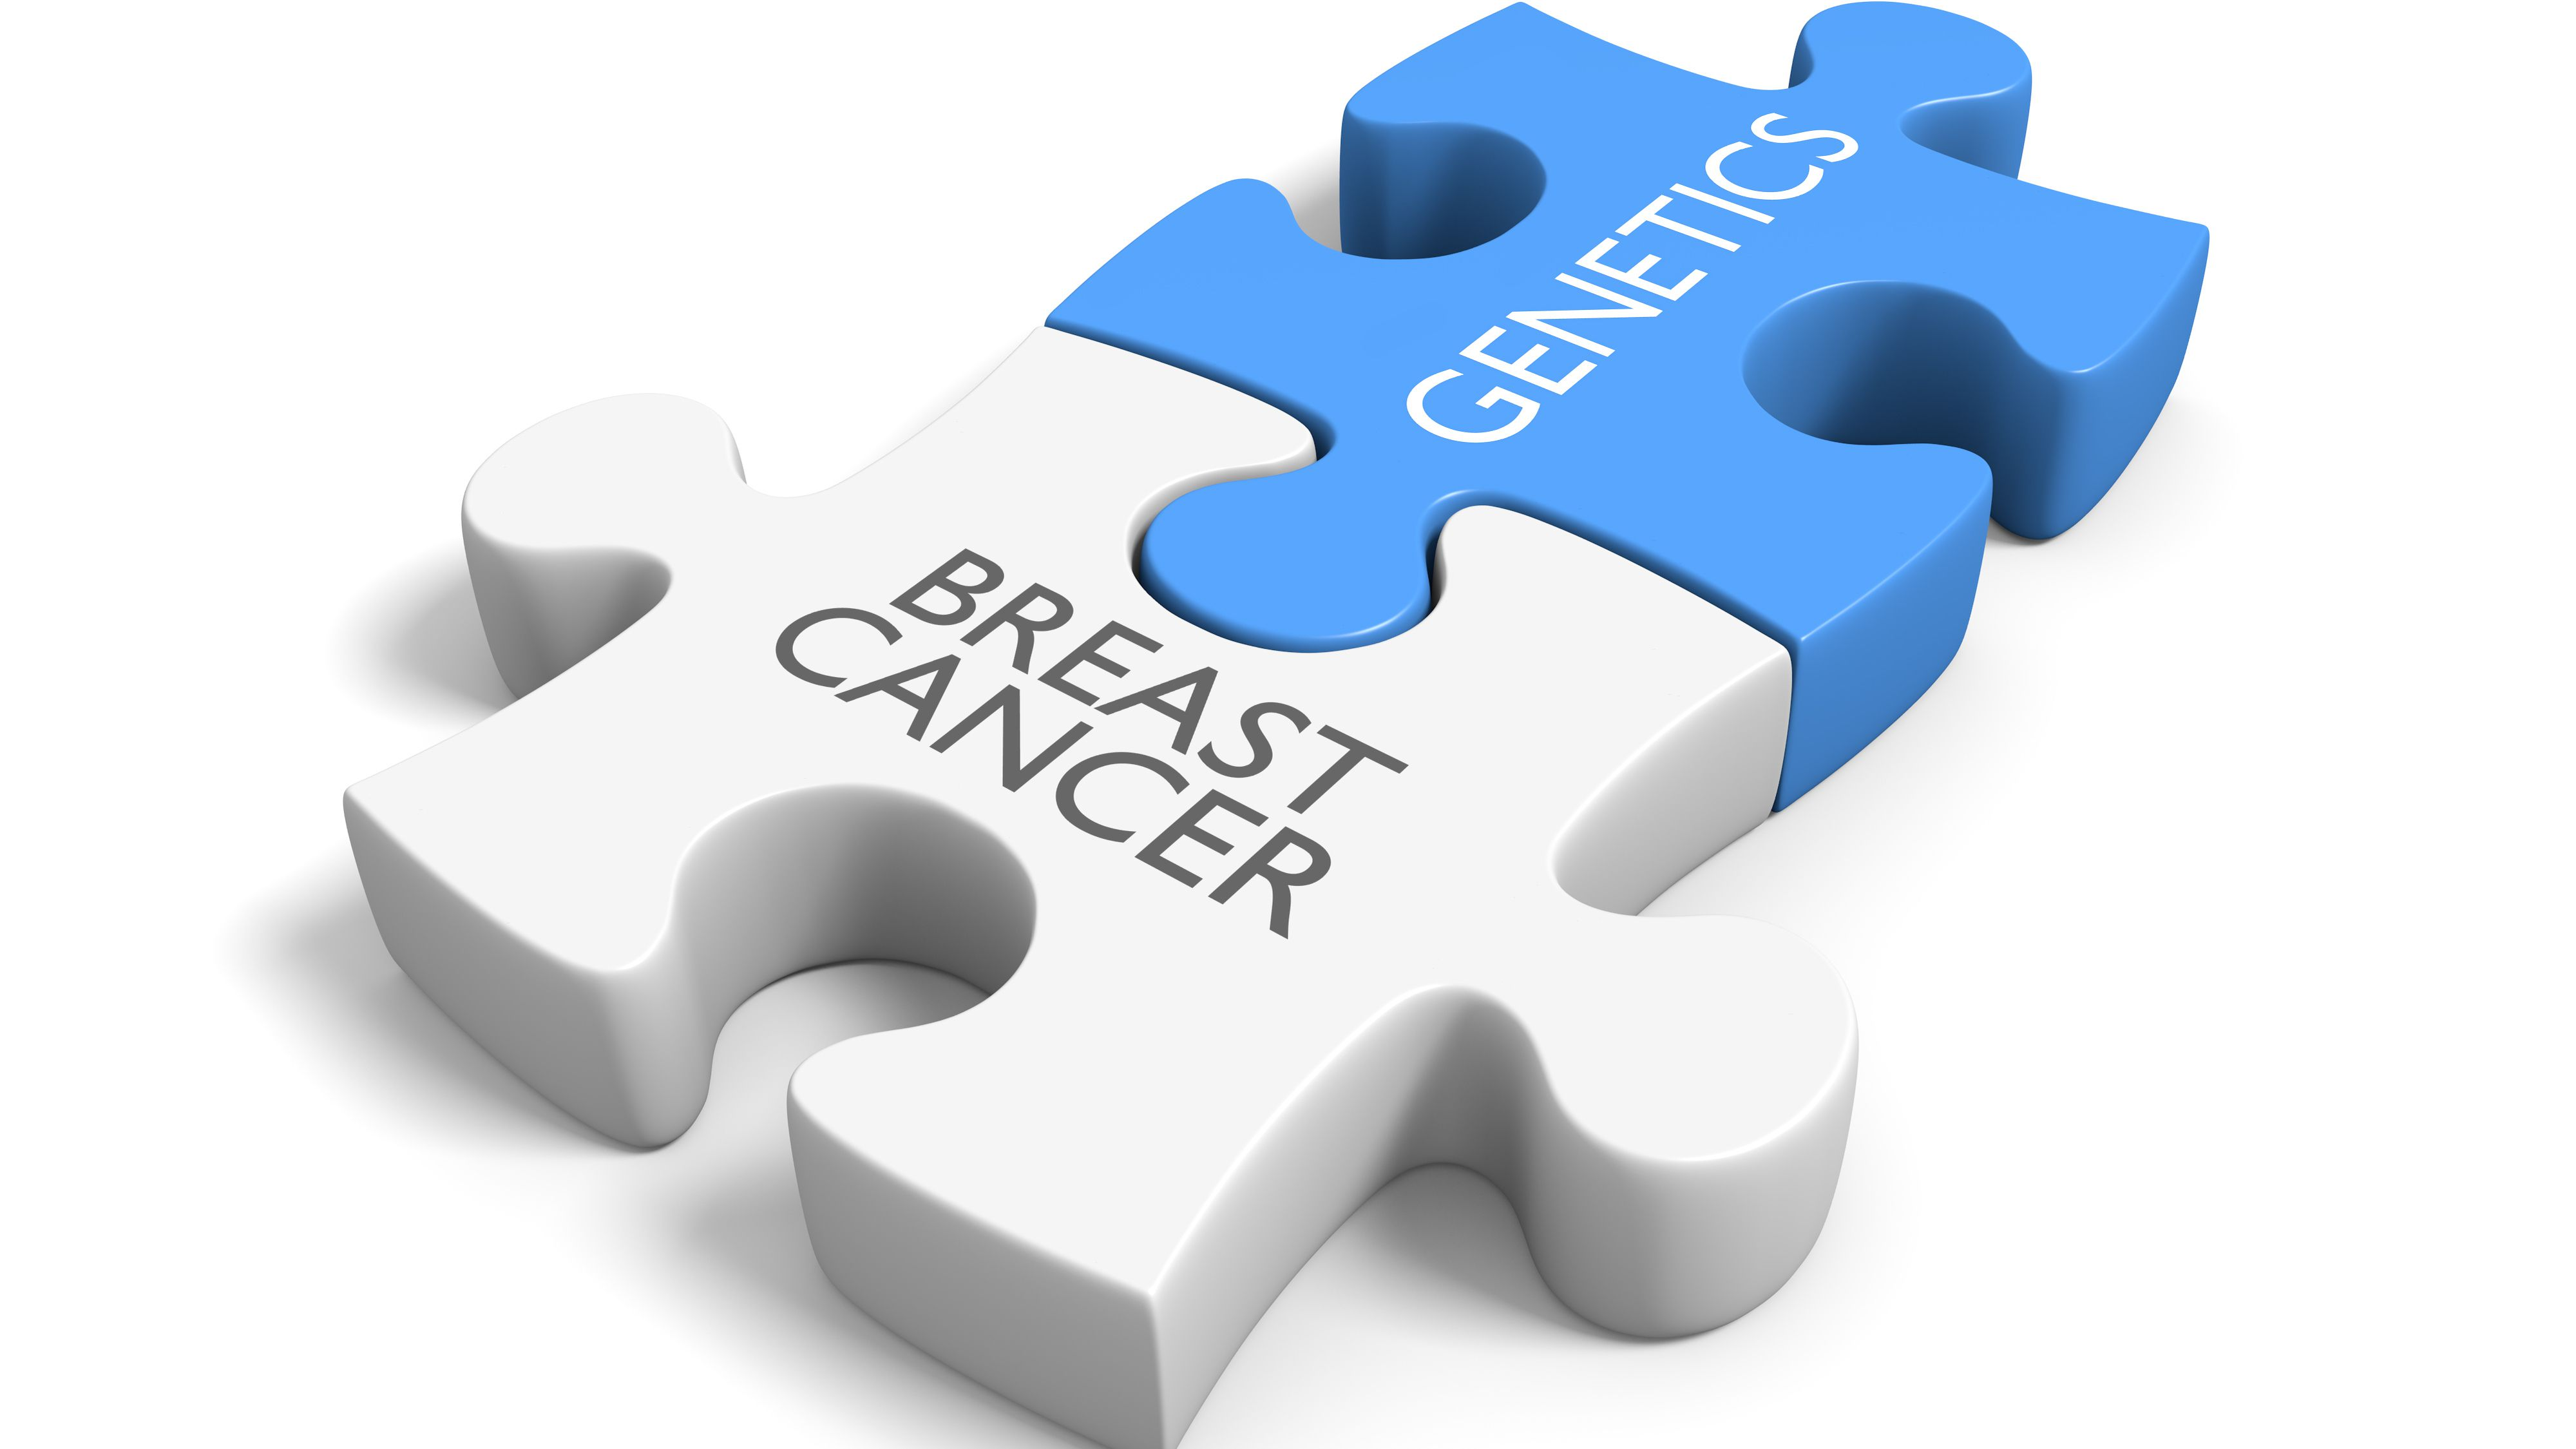 Cancer Gene Twice As Likely To Be >> The Role Of Brca Mutations In Breast Cancer